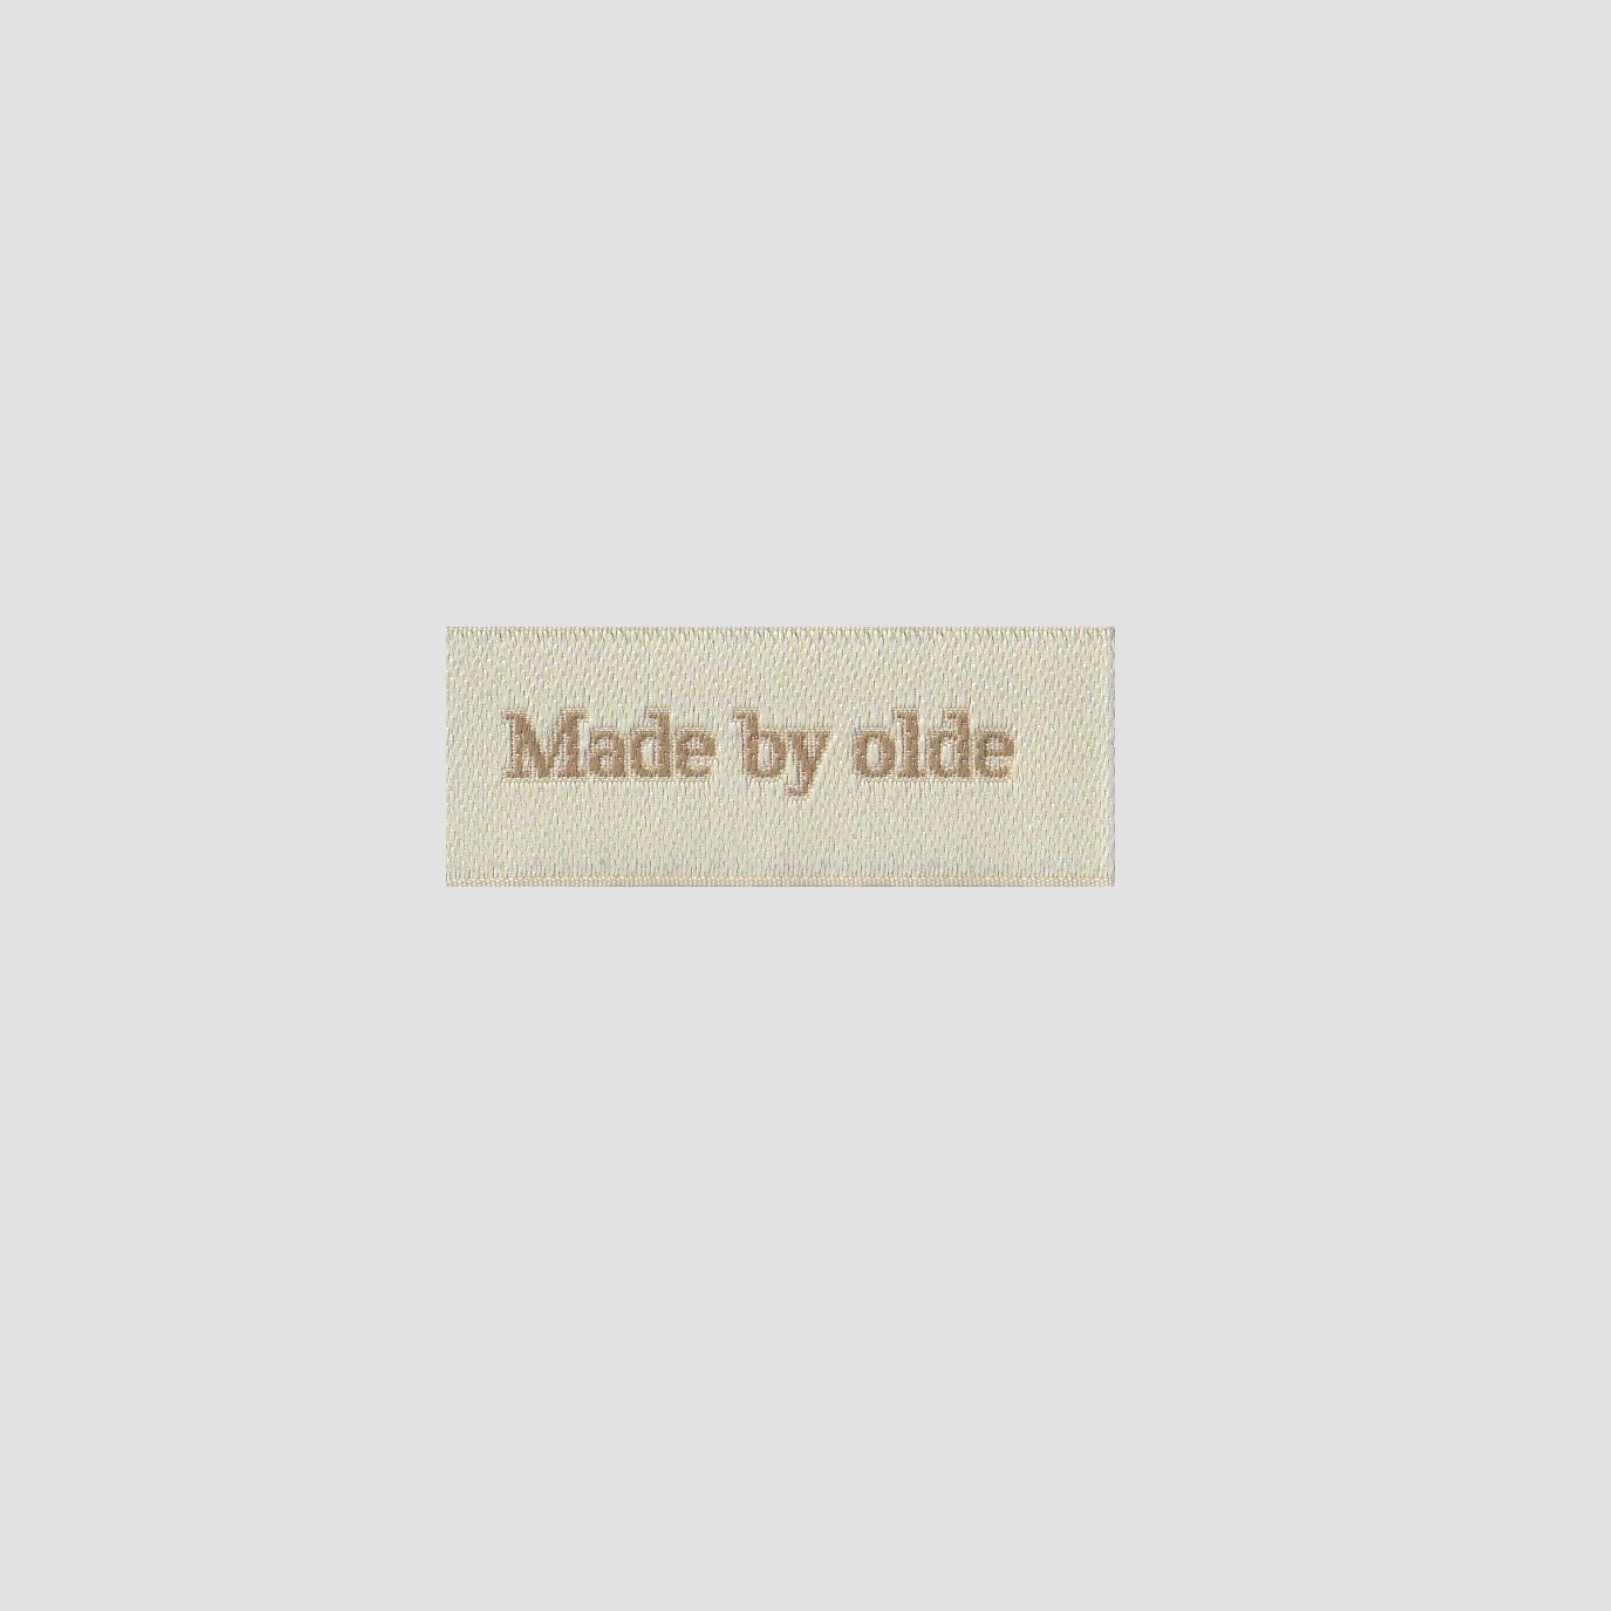 Image of Made by olde